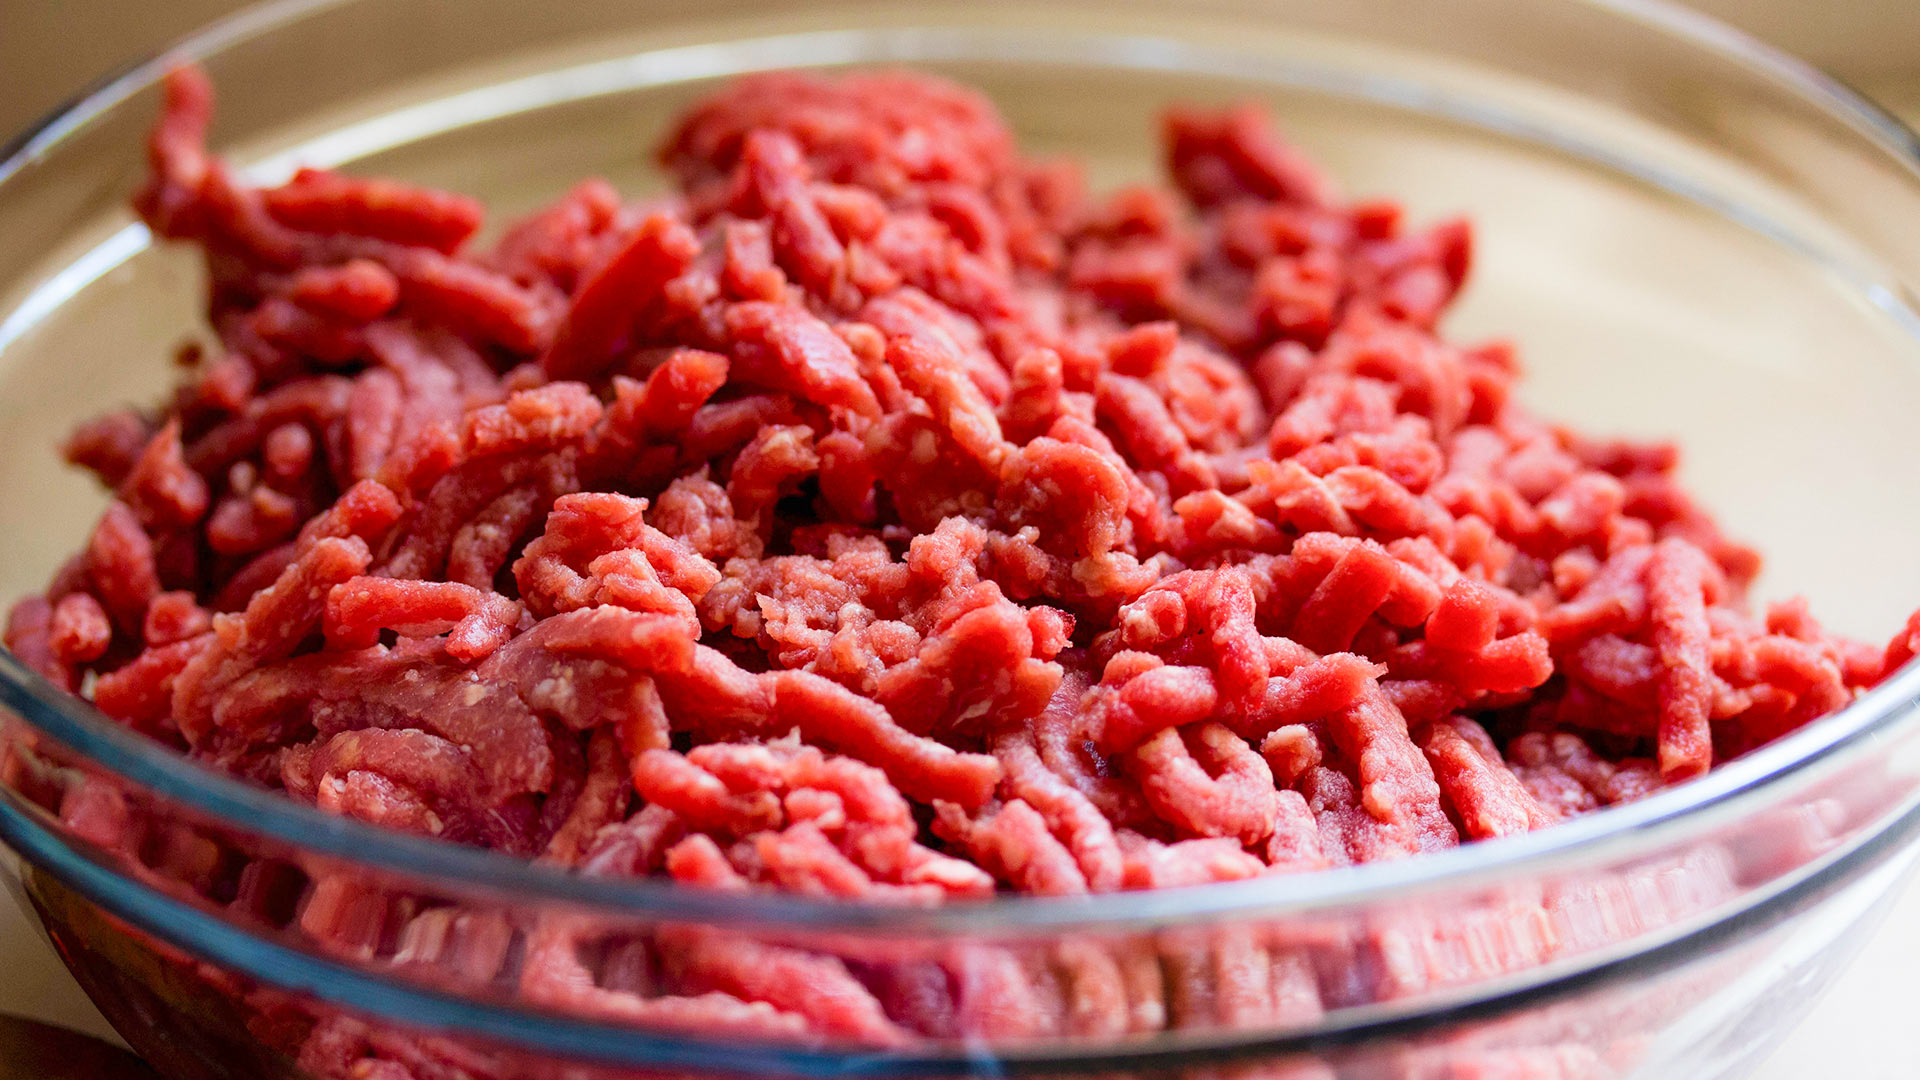 Ground beef in a bowl.